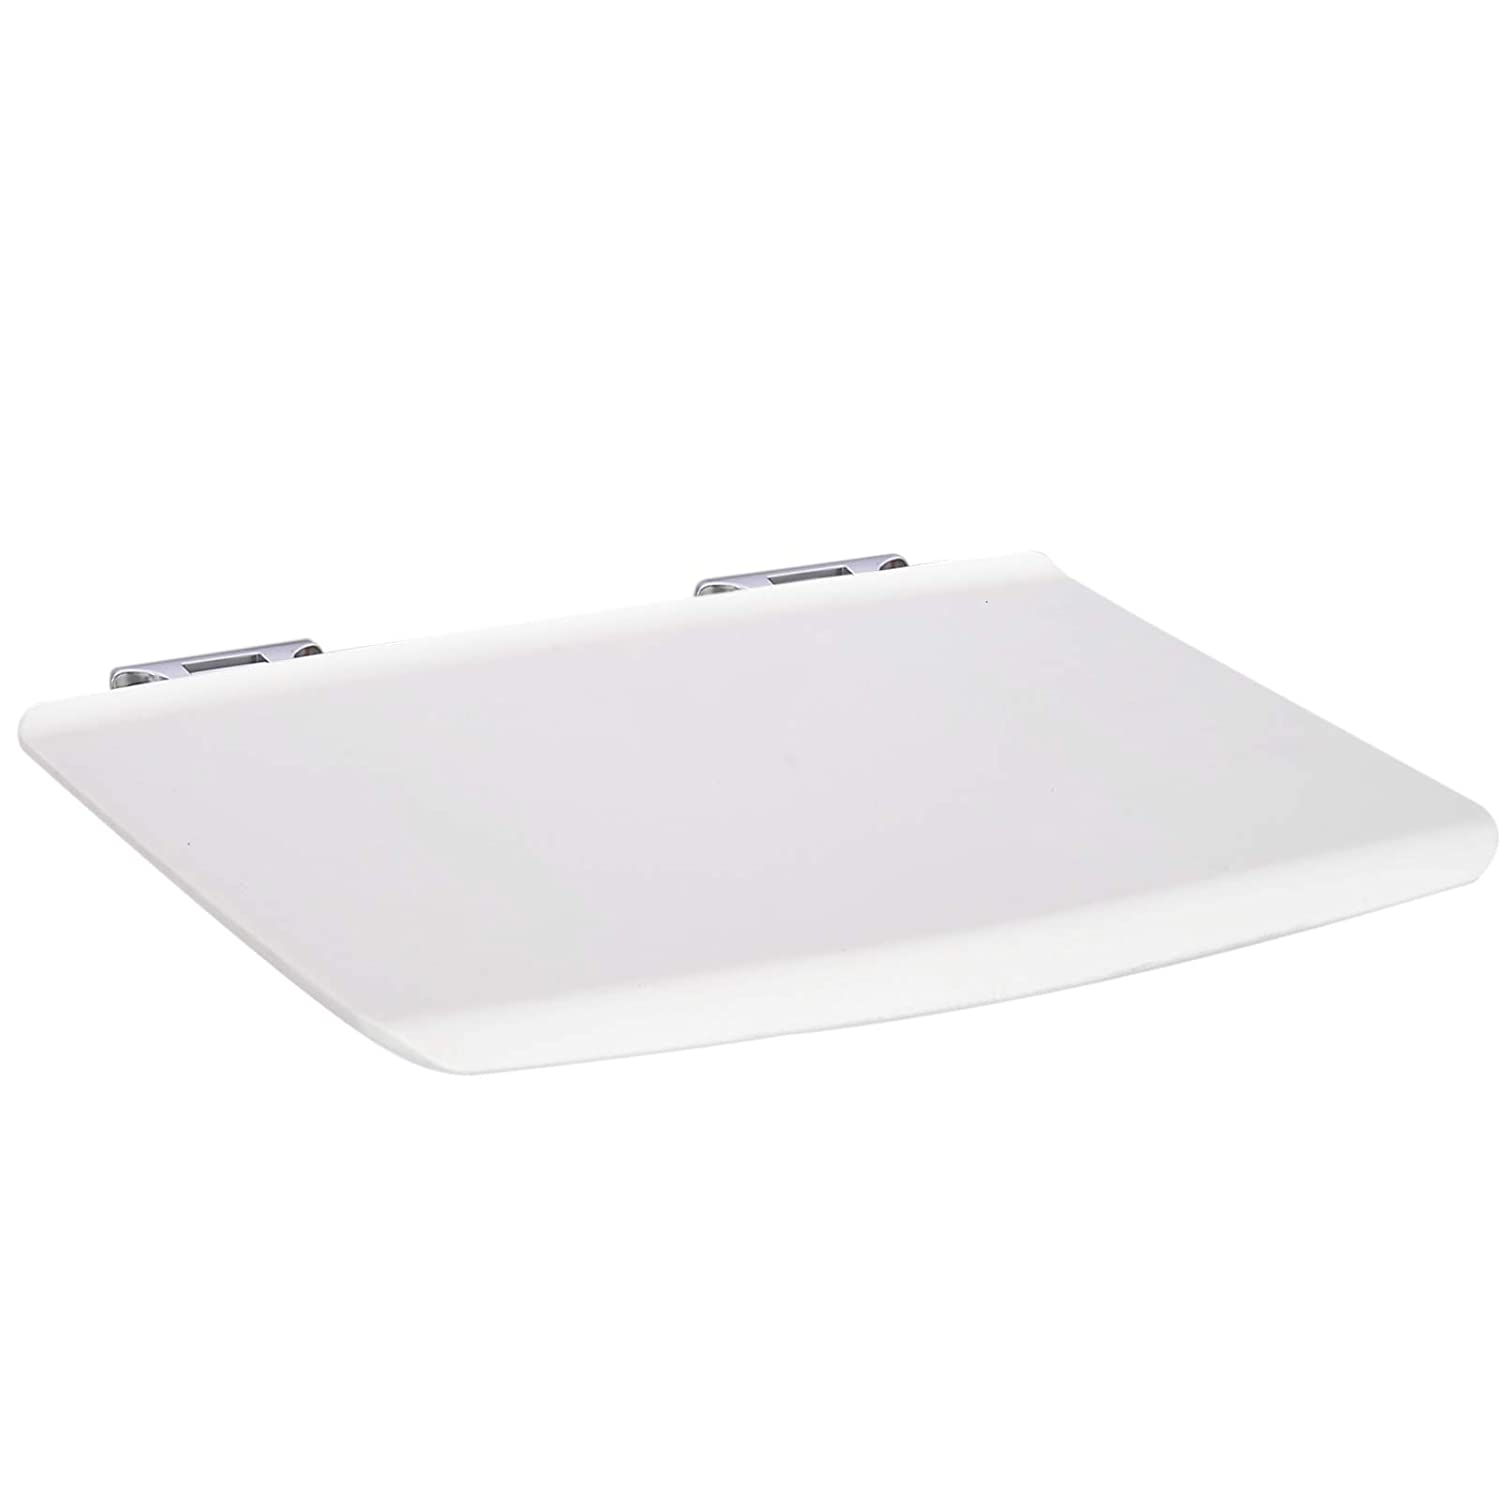 White Croydex Wall Mounted Fold-Away Shower Seat no fixings included in pack